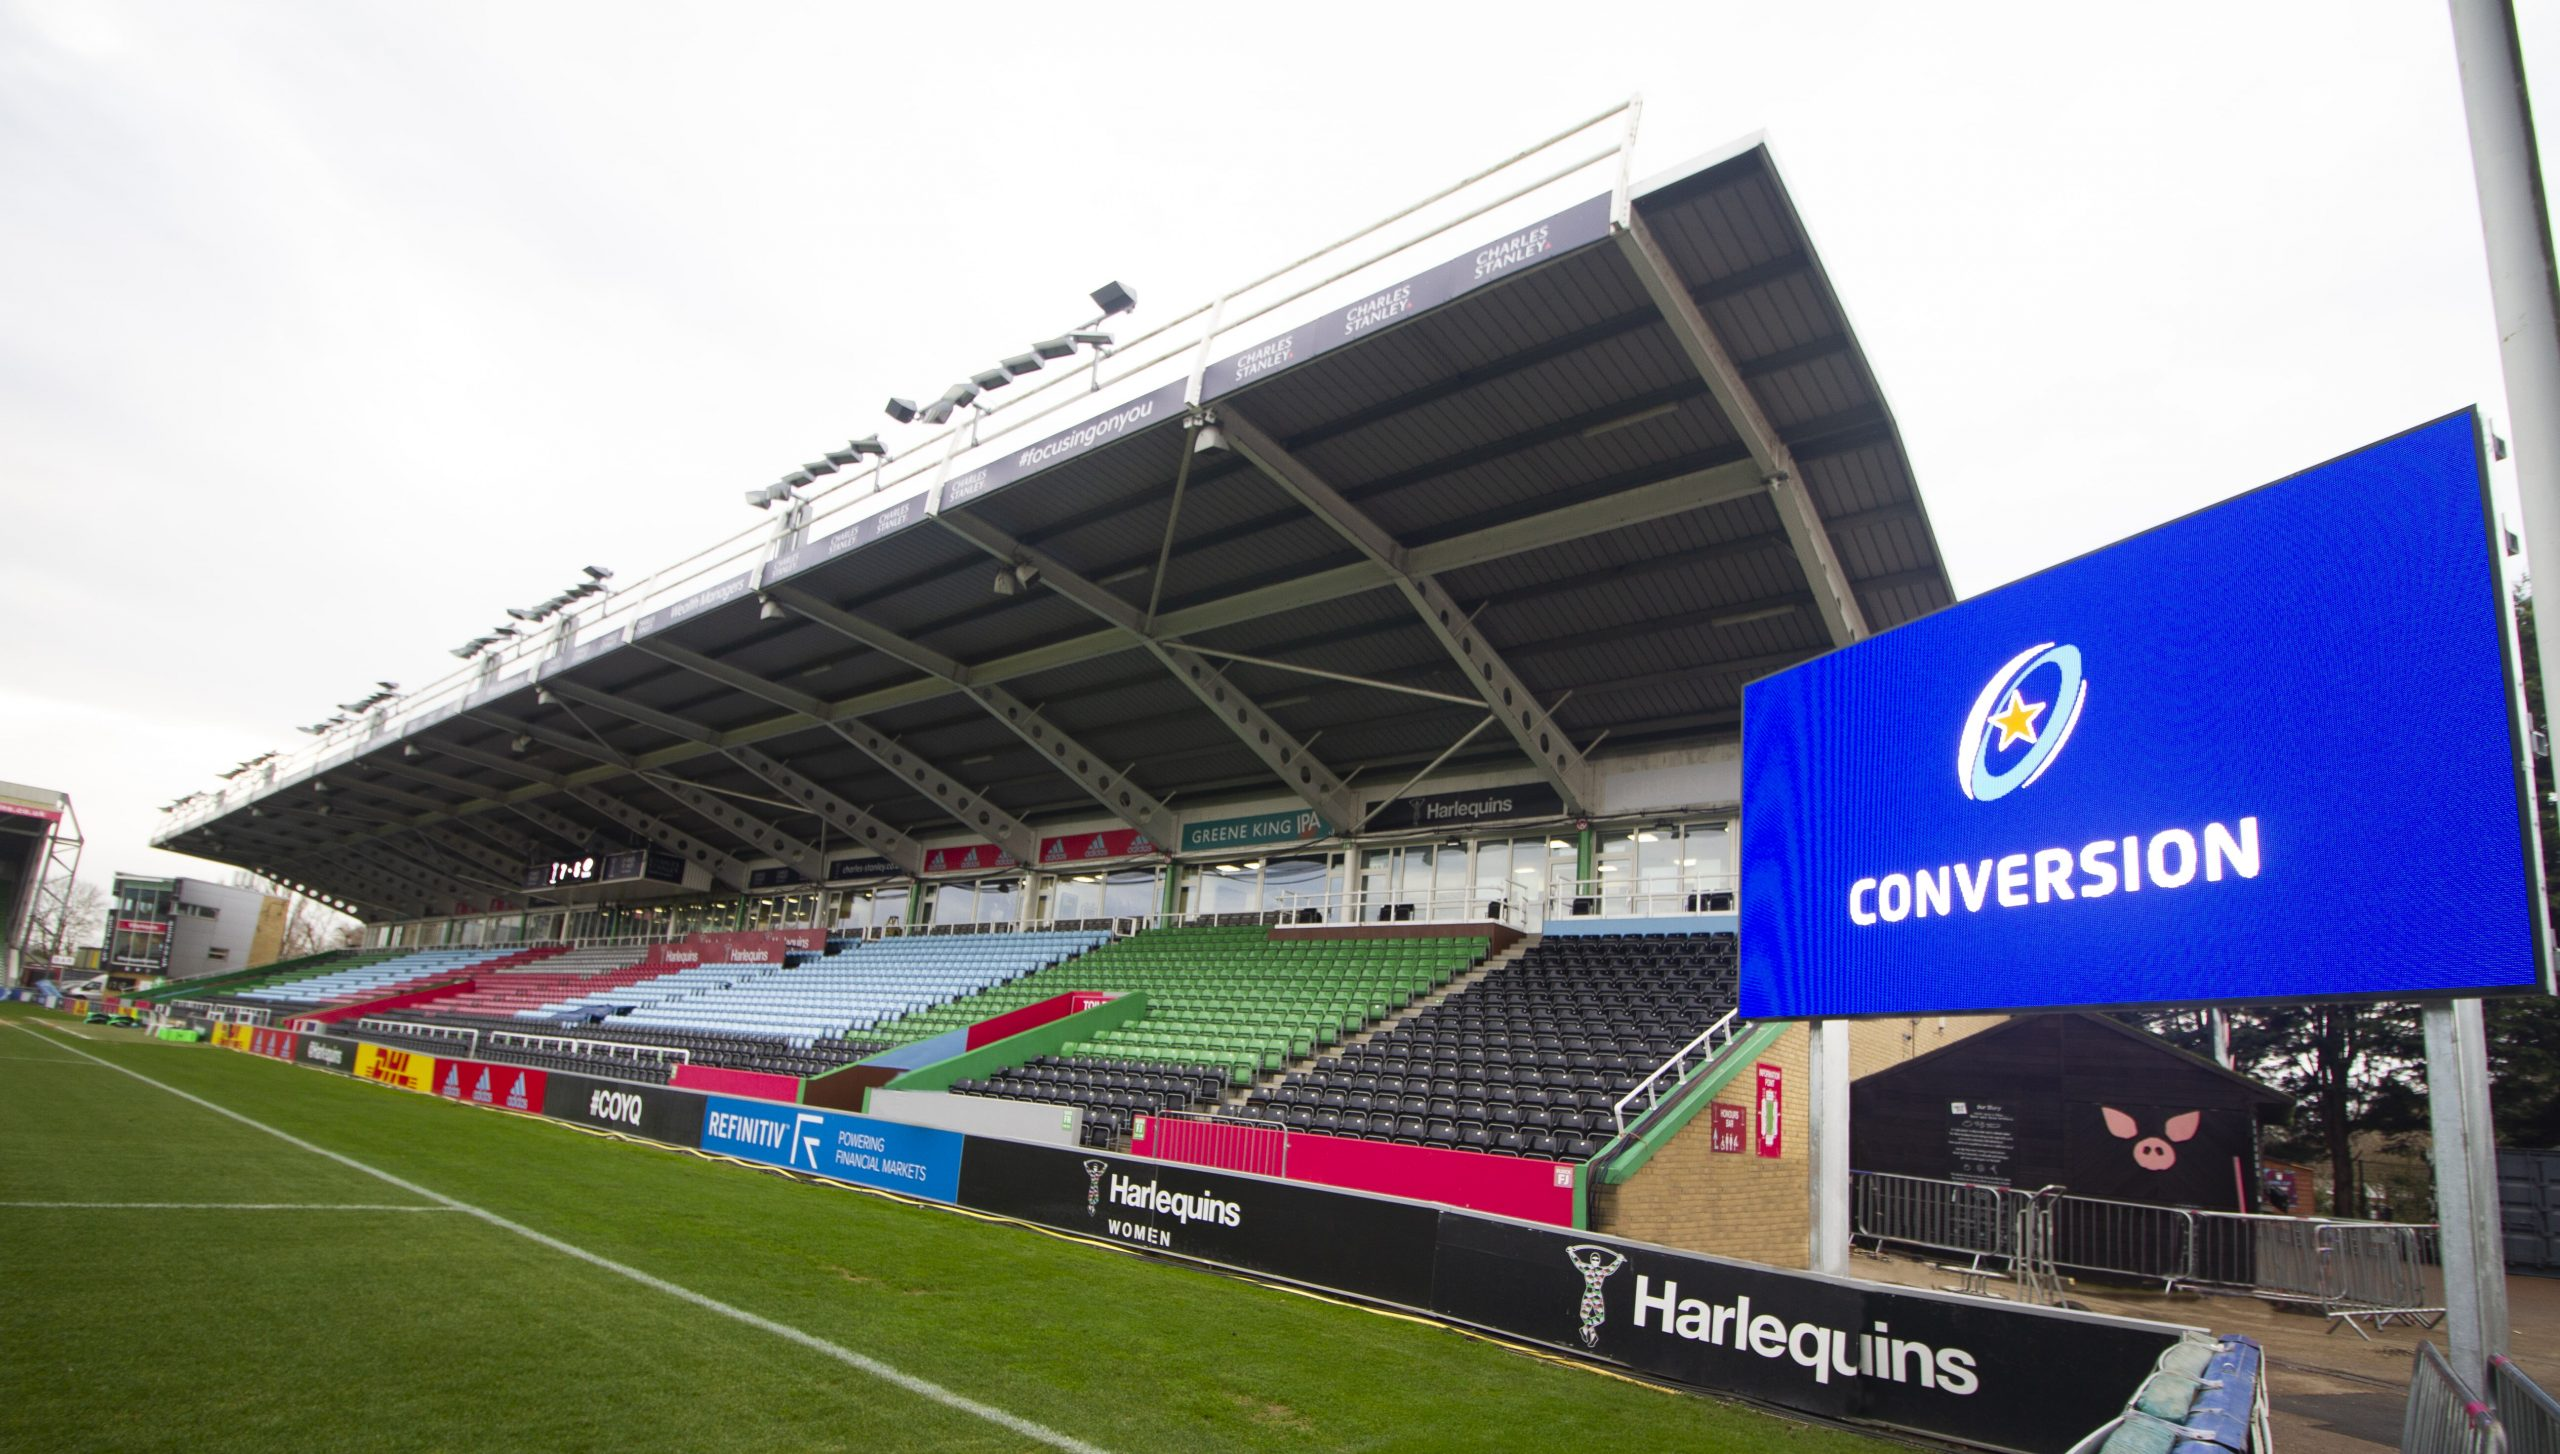 Harlequins-Rugby-Screen-Conversion-Concept-Group-2-min